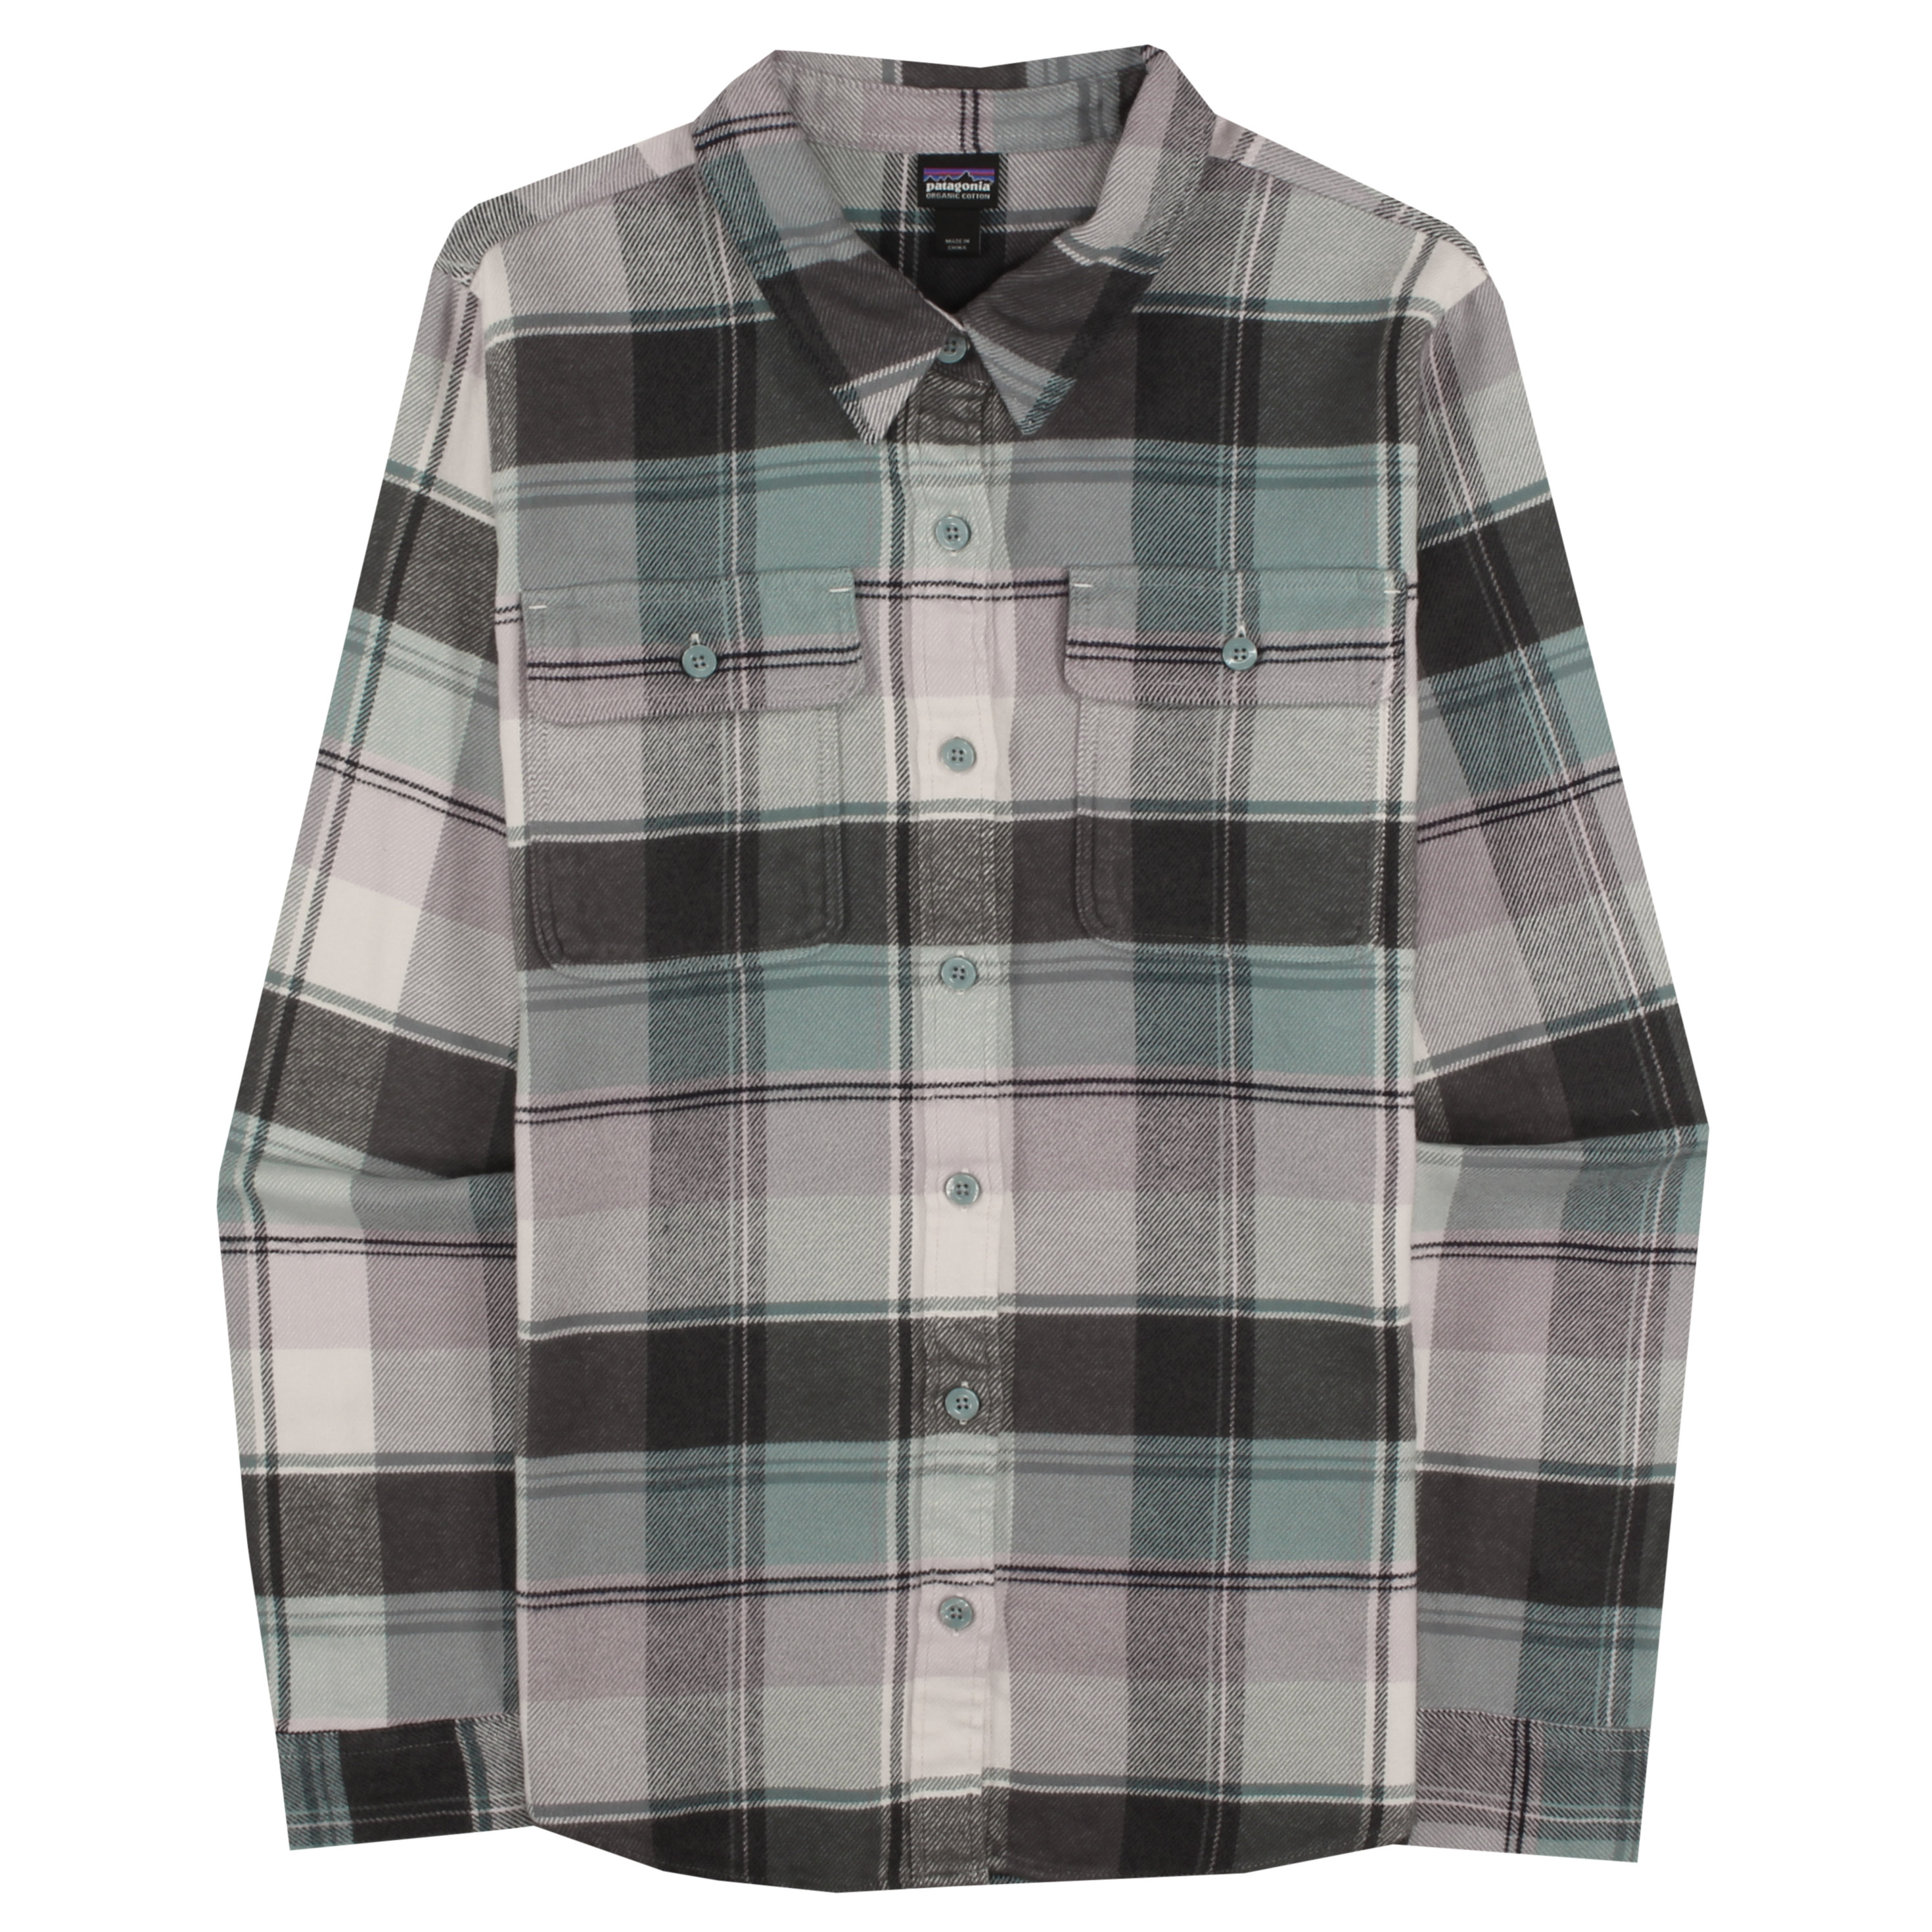 1914c2f8 Patagonia Worn Wear Women's Long-Sleeved Fjord Flannel Shirt Activist Big: Nomad  Green - Used